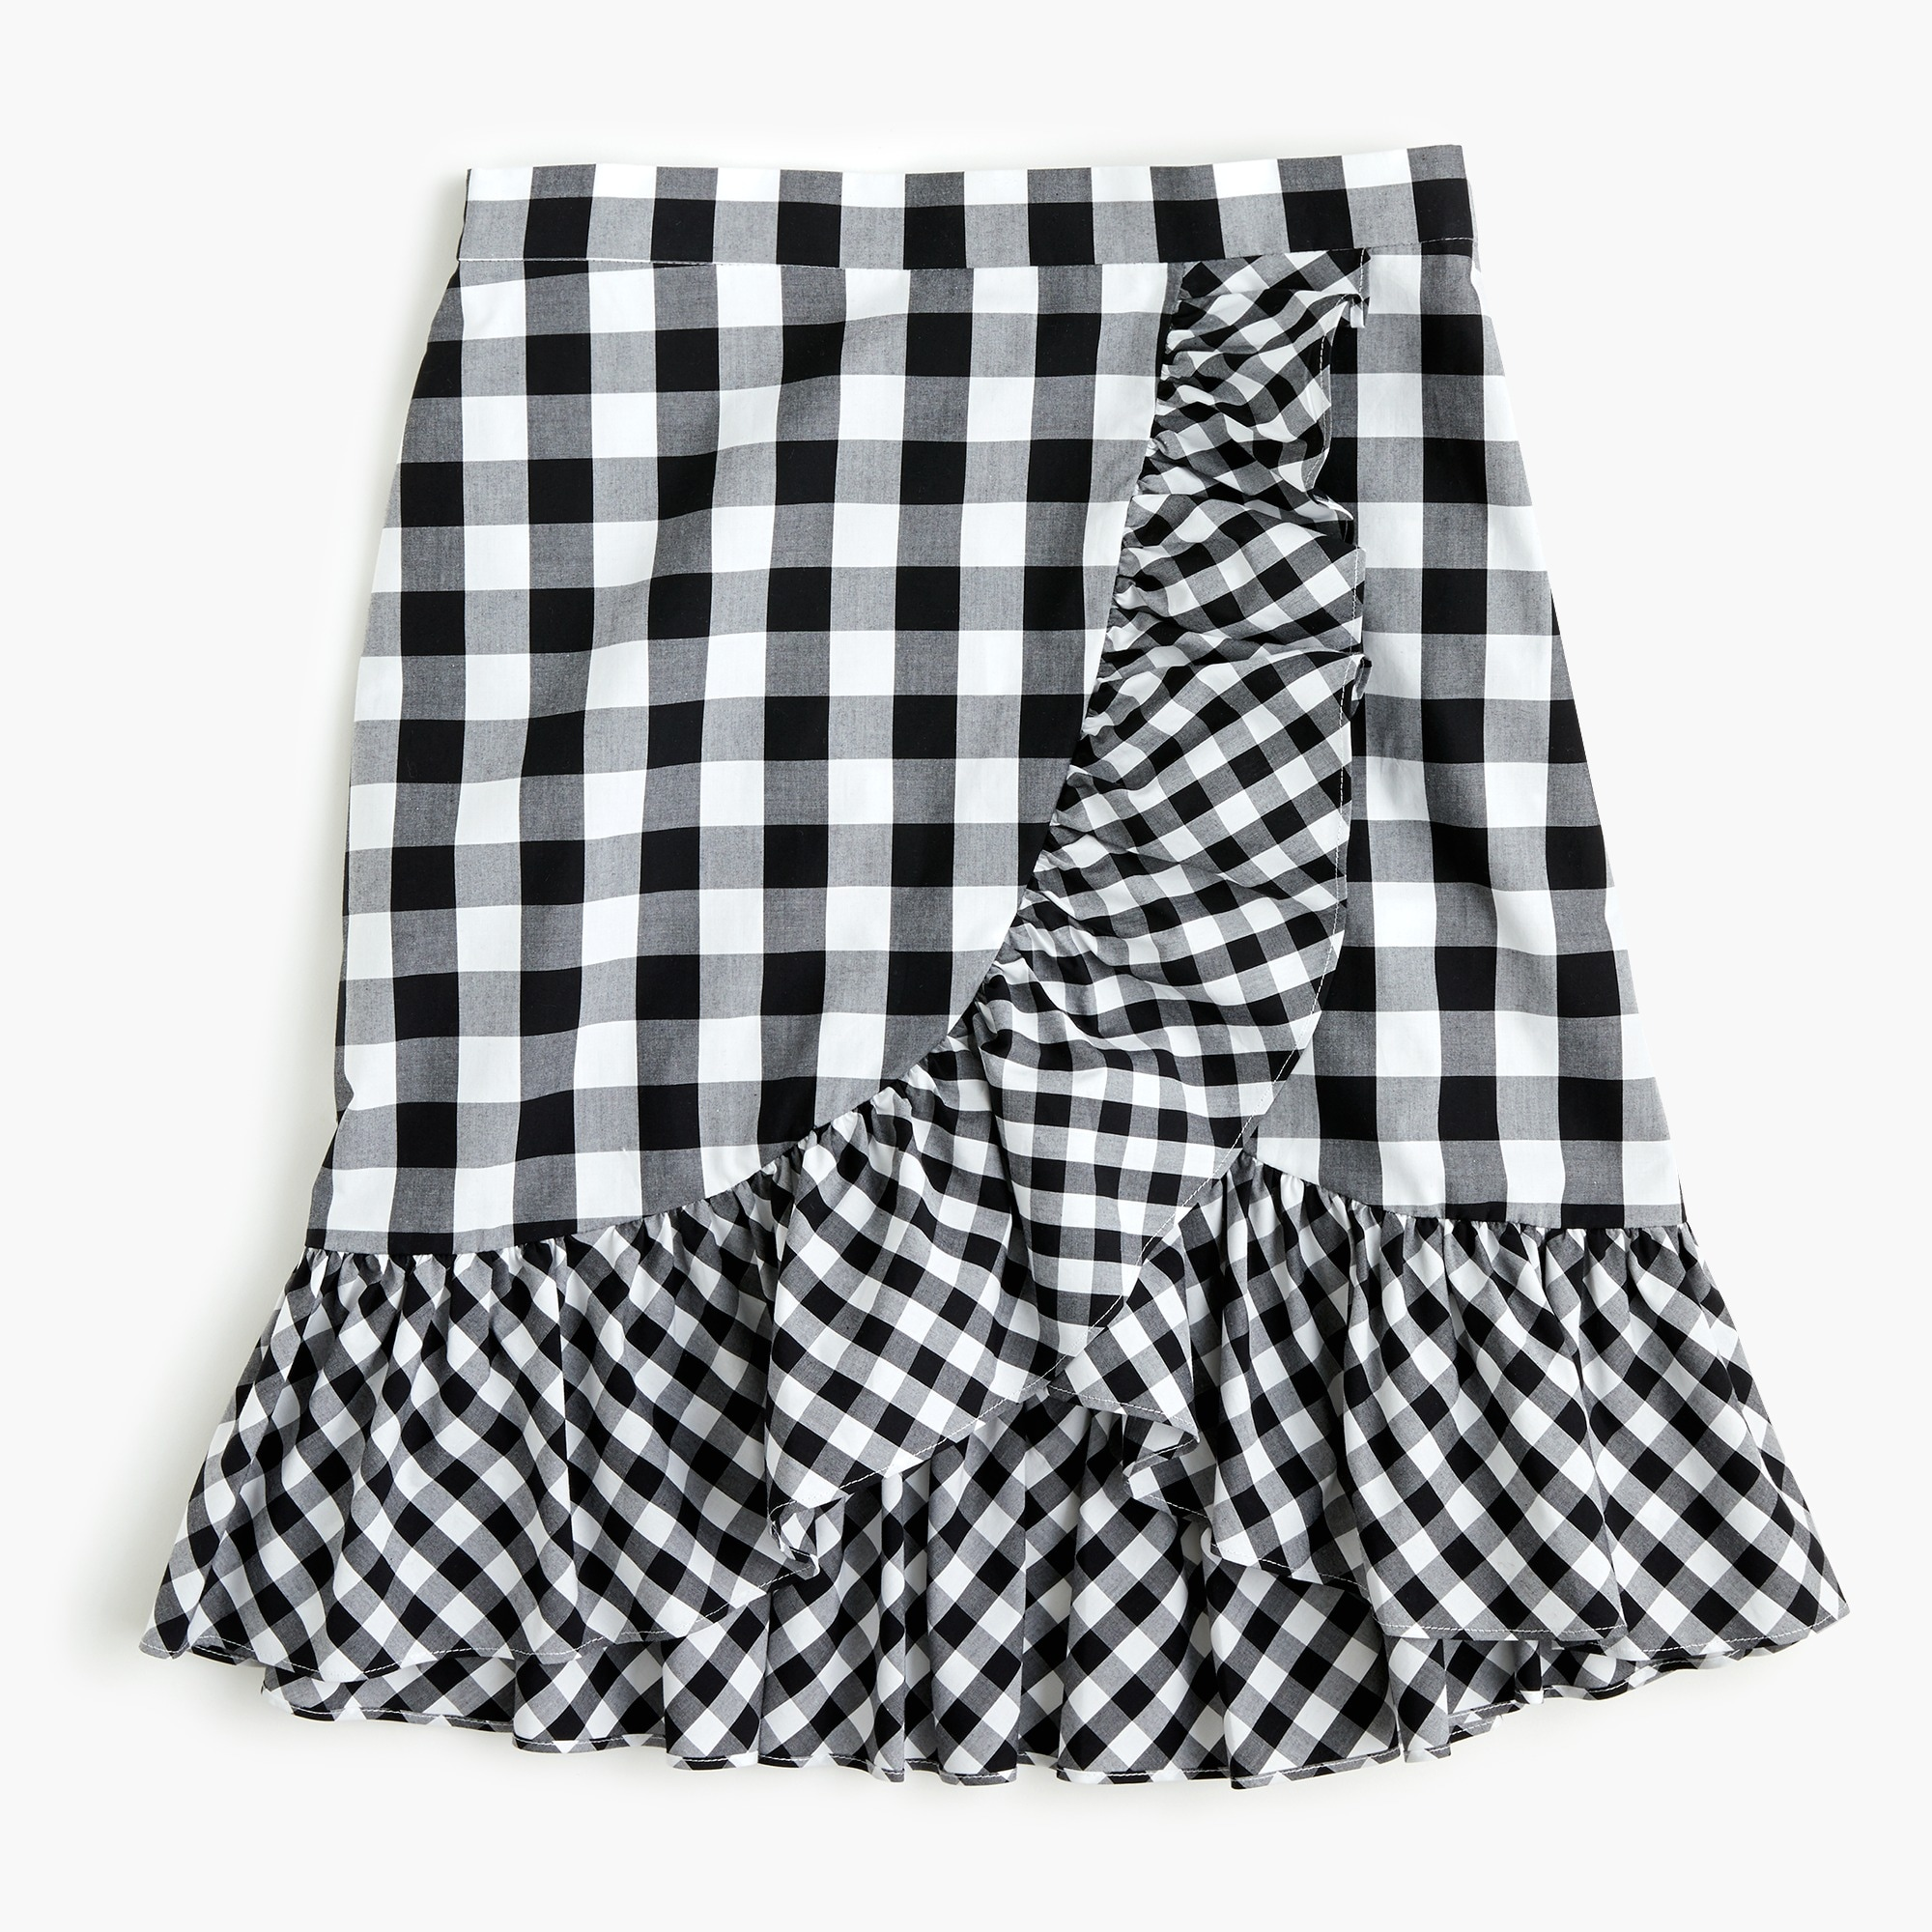 Ruffle mini skirt in gingham